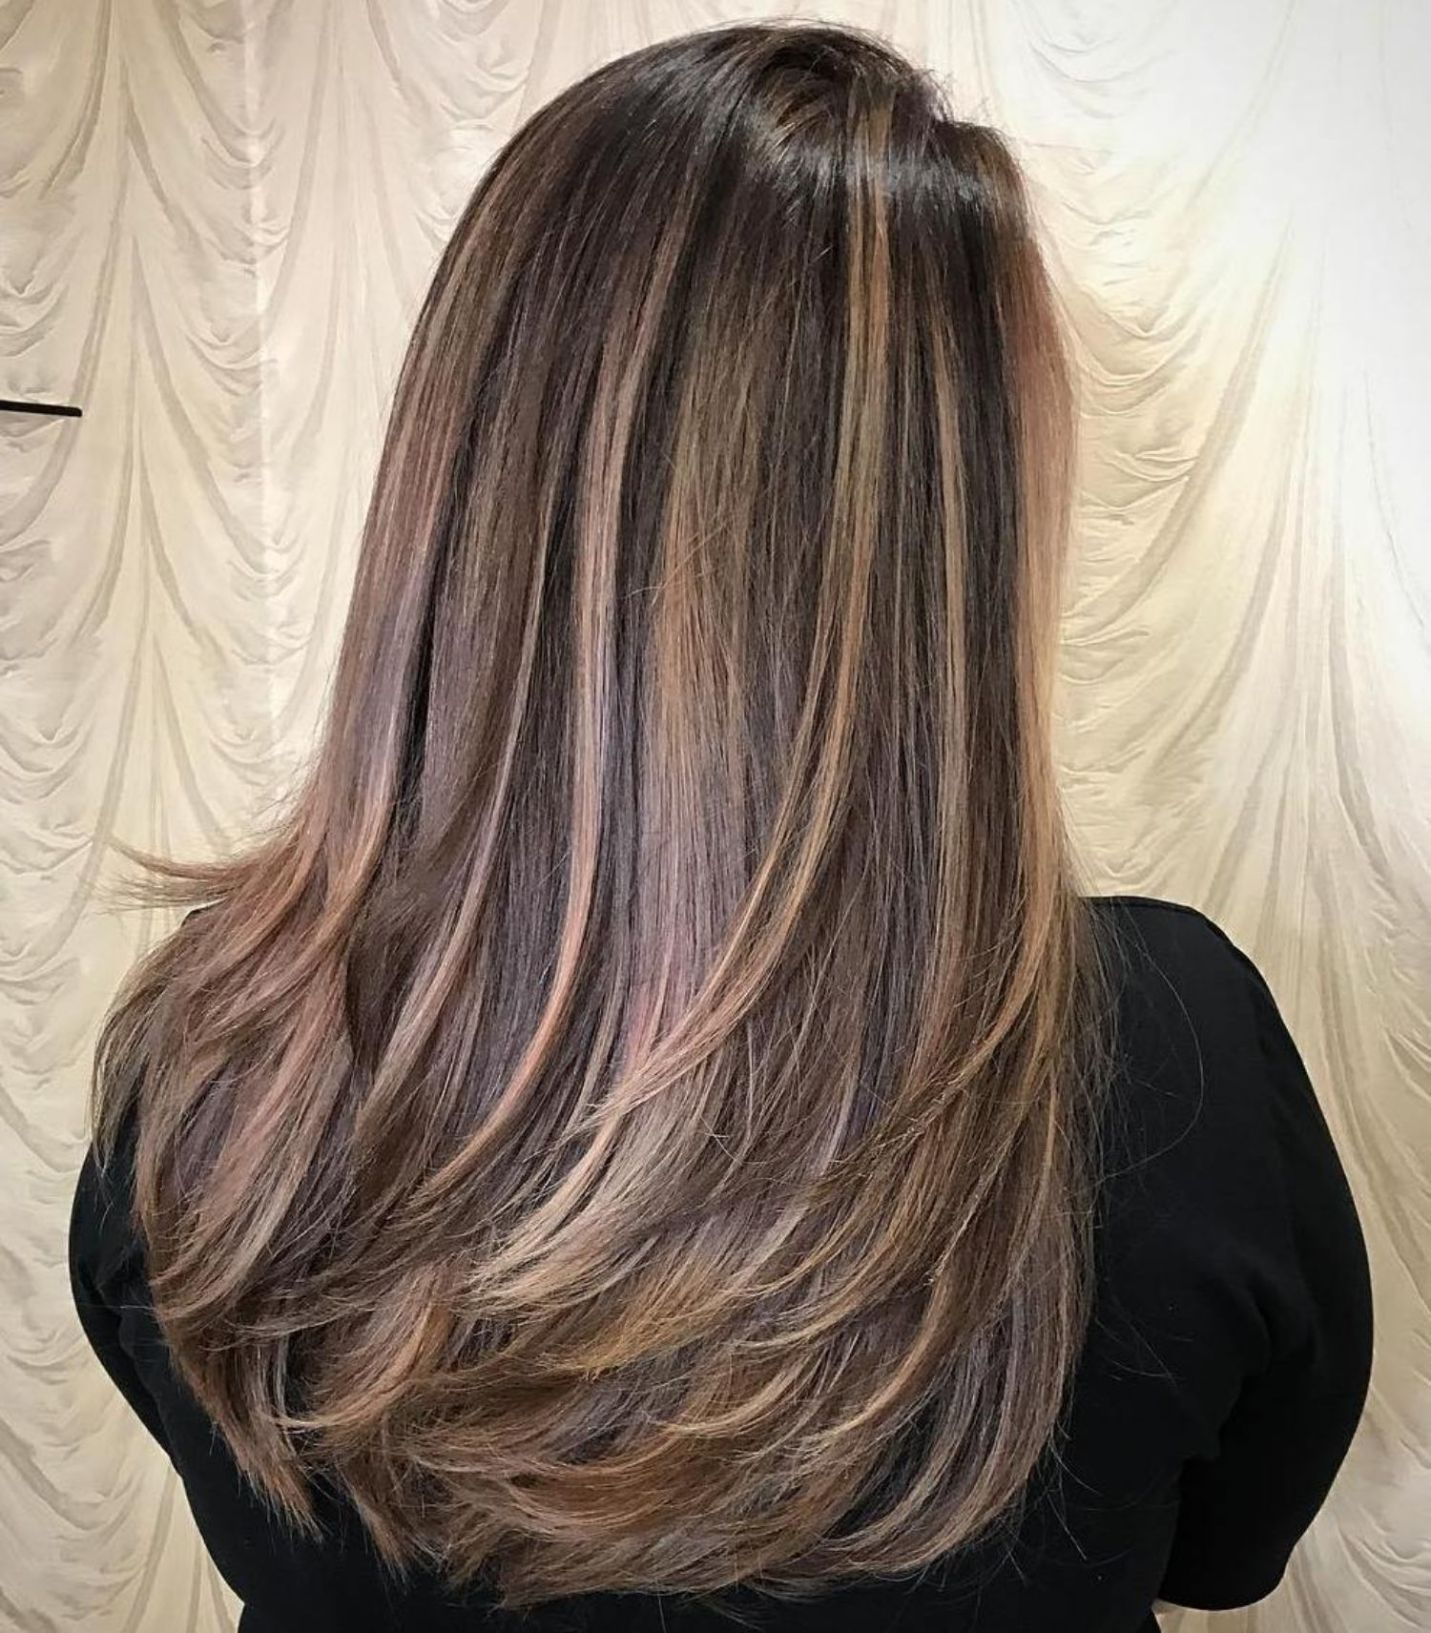 60 Most Beneficial Haircuts For Thick Hair Of Any Length Thick Hair Styles Haircuts For Long Hair Haircut For Thick Hair